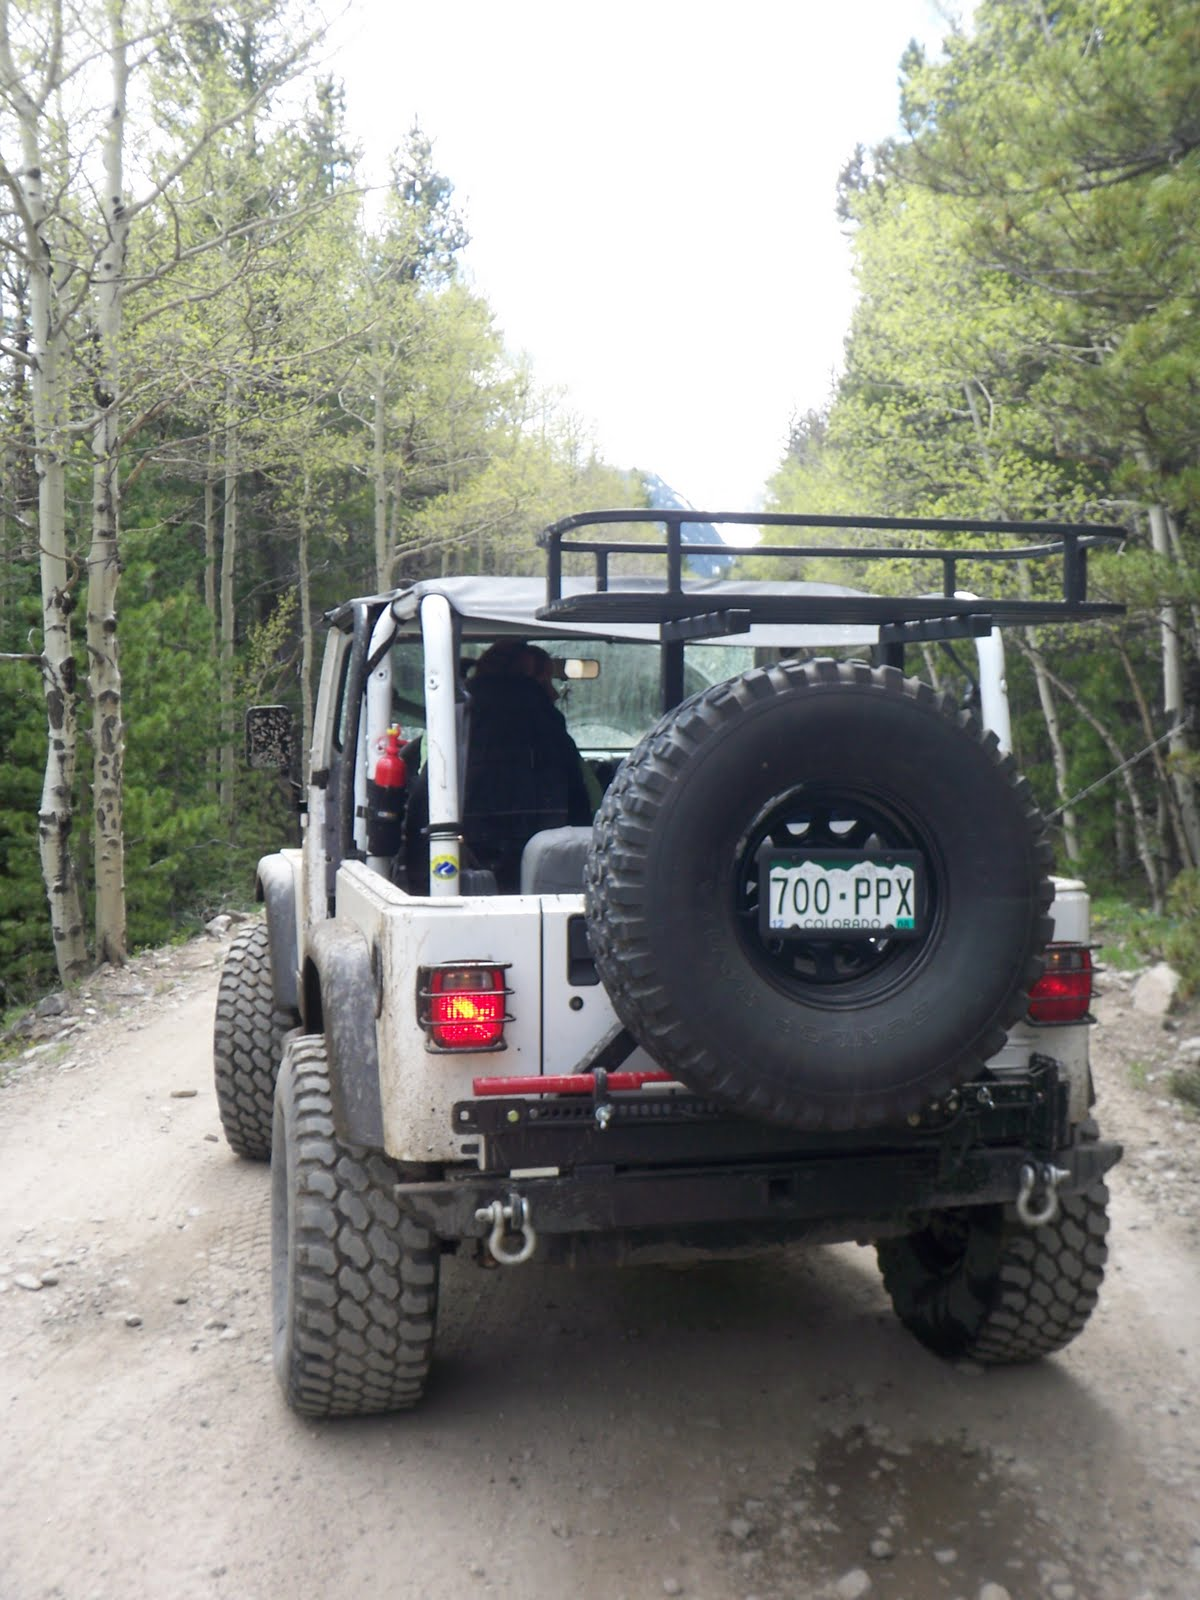 FOR SALE: 1998 Jeep Liberty TJ LOW MILES: 1998 Jeep TJ Wrangler FOR SALE